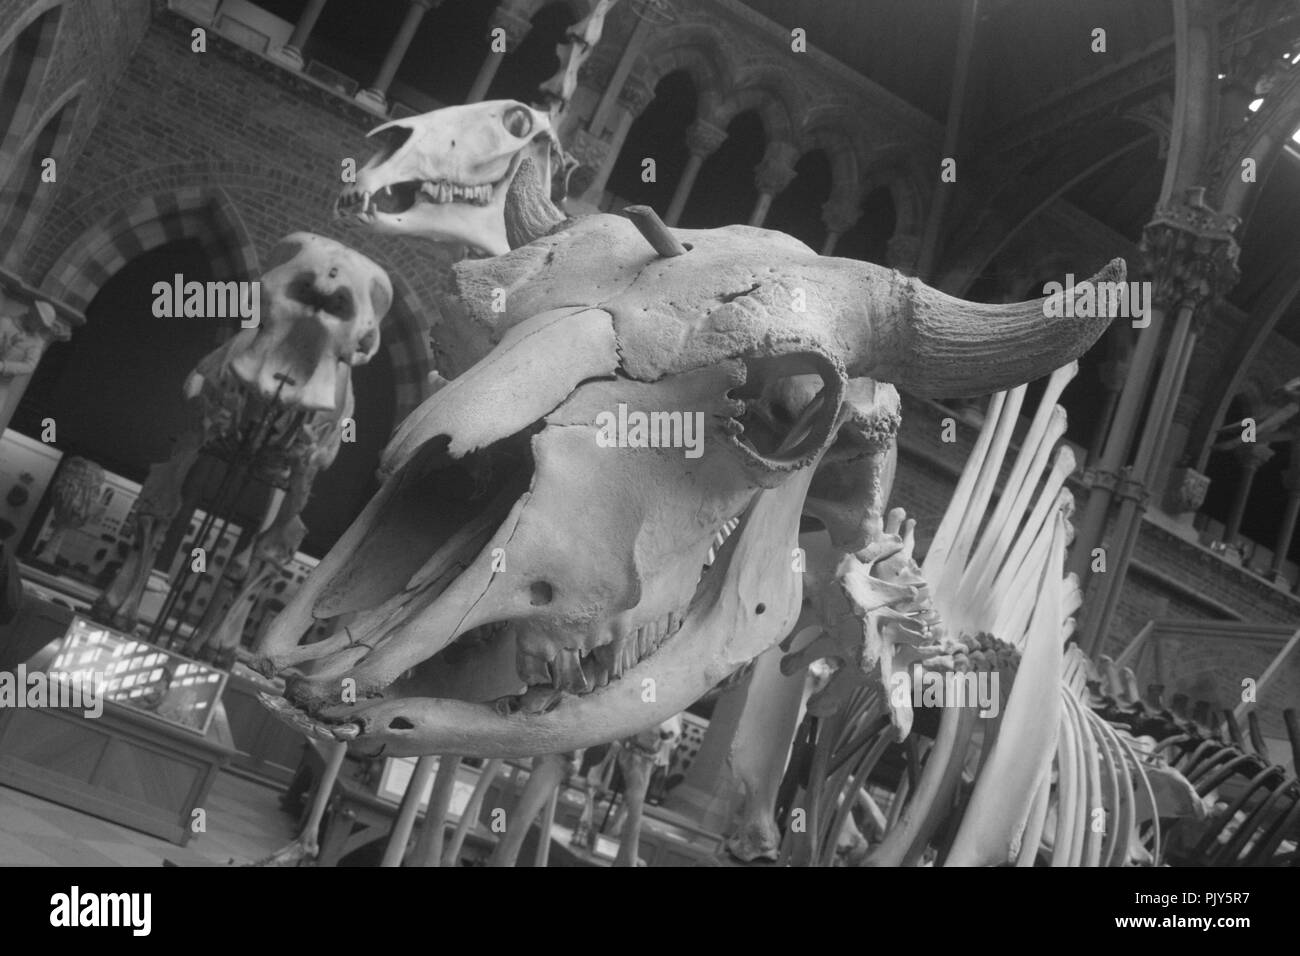 The photograph was taken of the skeleton of a dinosaur at the Natural History Museum in Oxford, United Kingdom in March 2017. Stock Photo